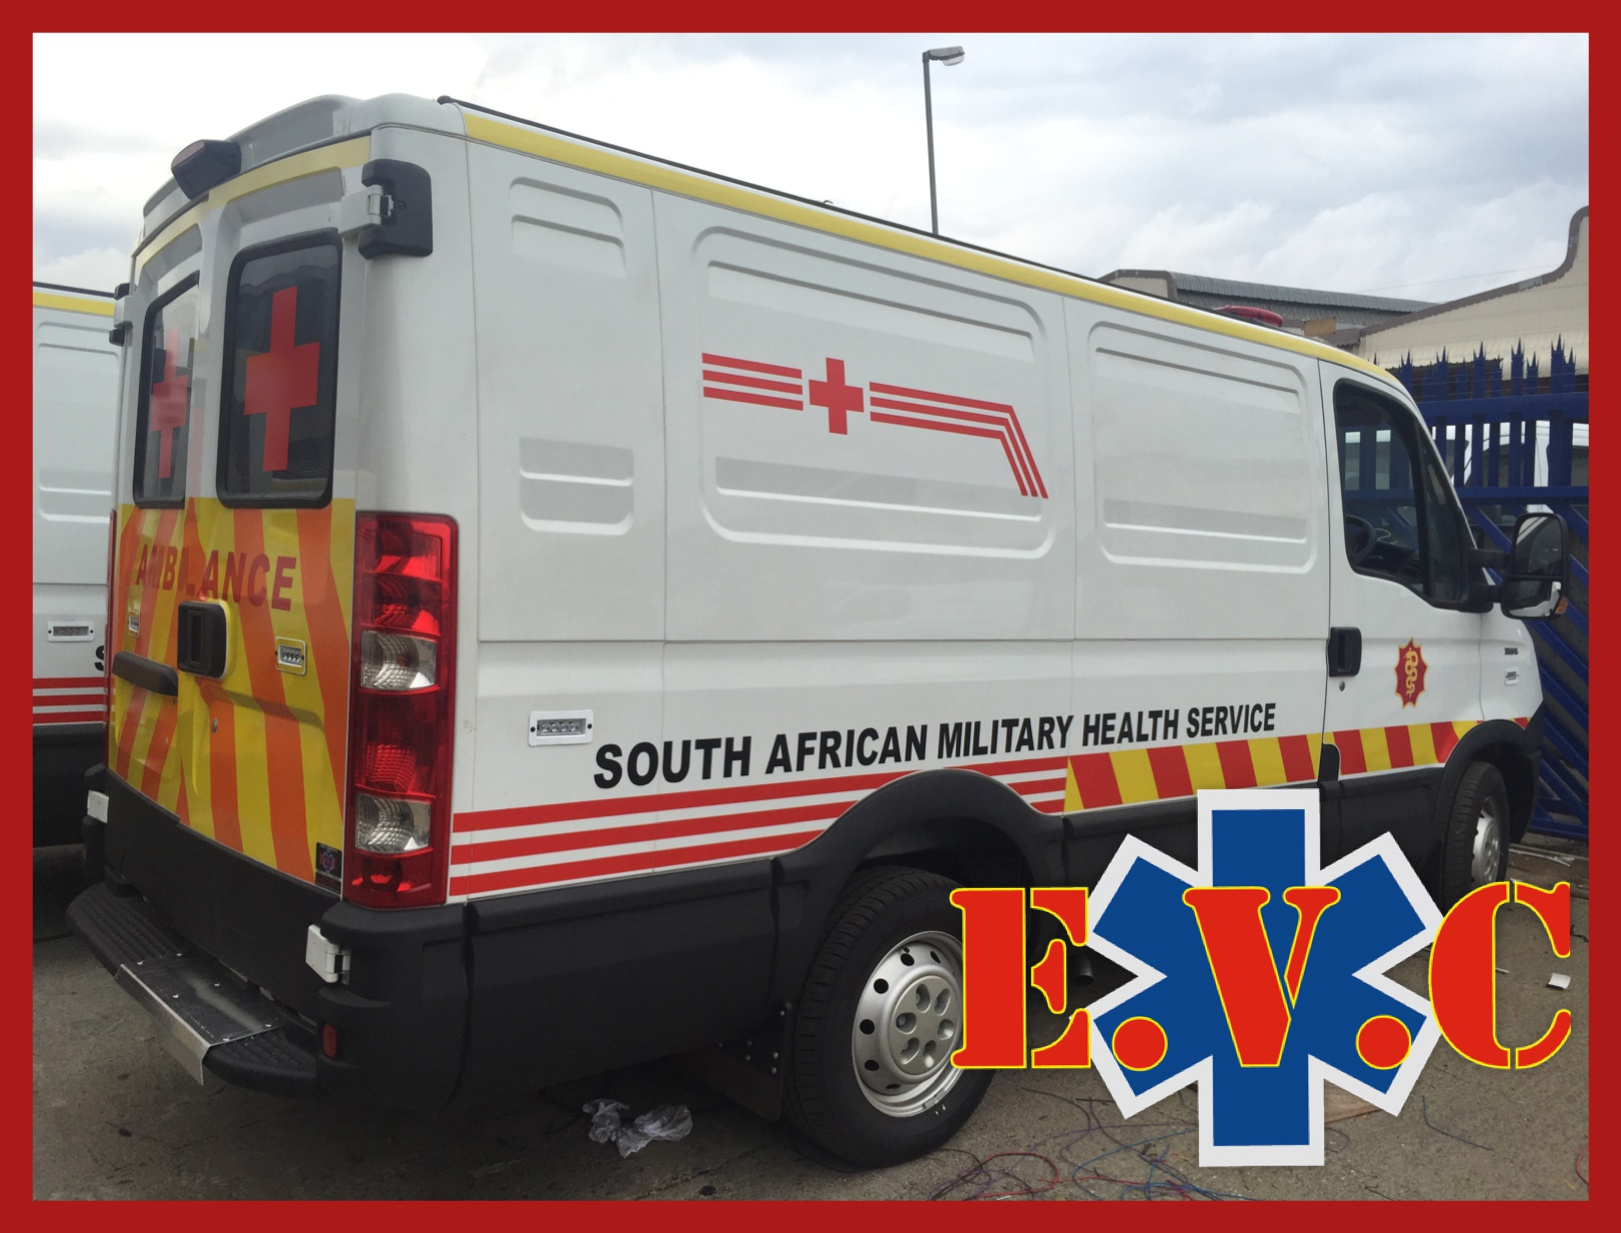 IVECO Ambulance for South African Military Health Services